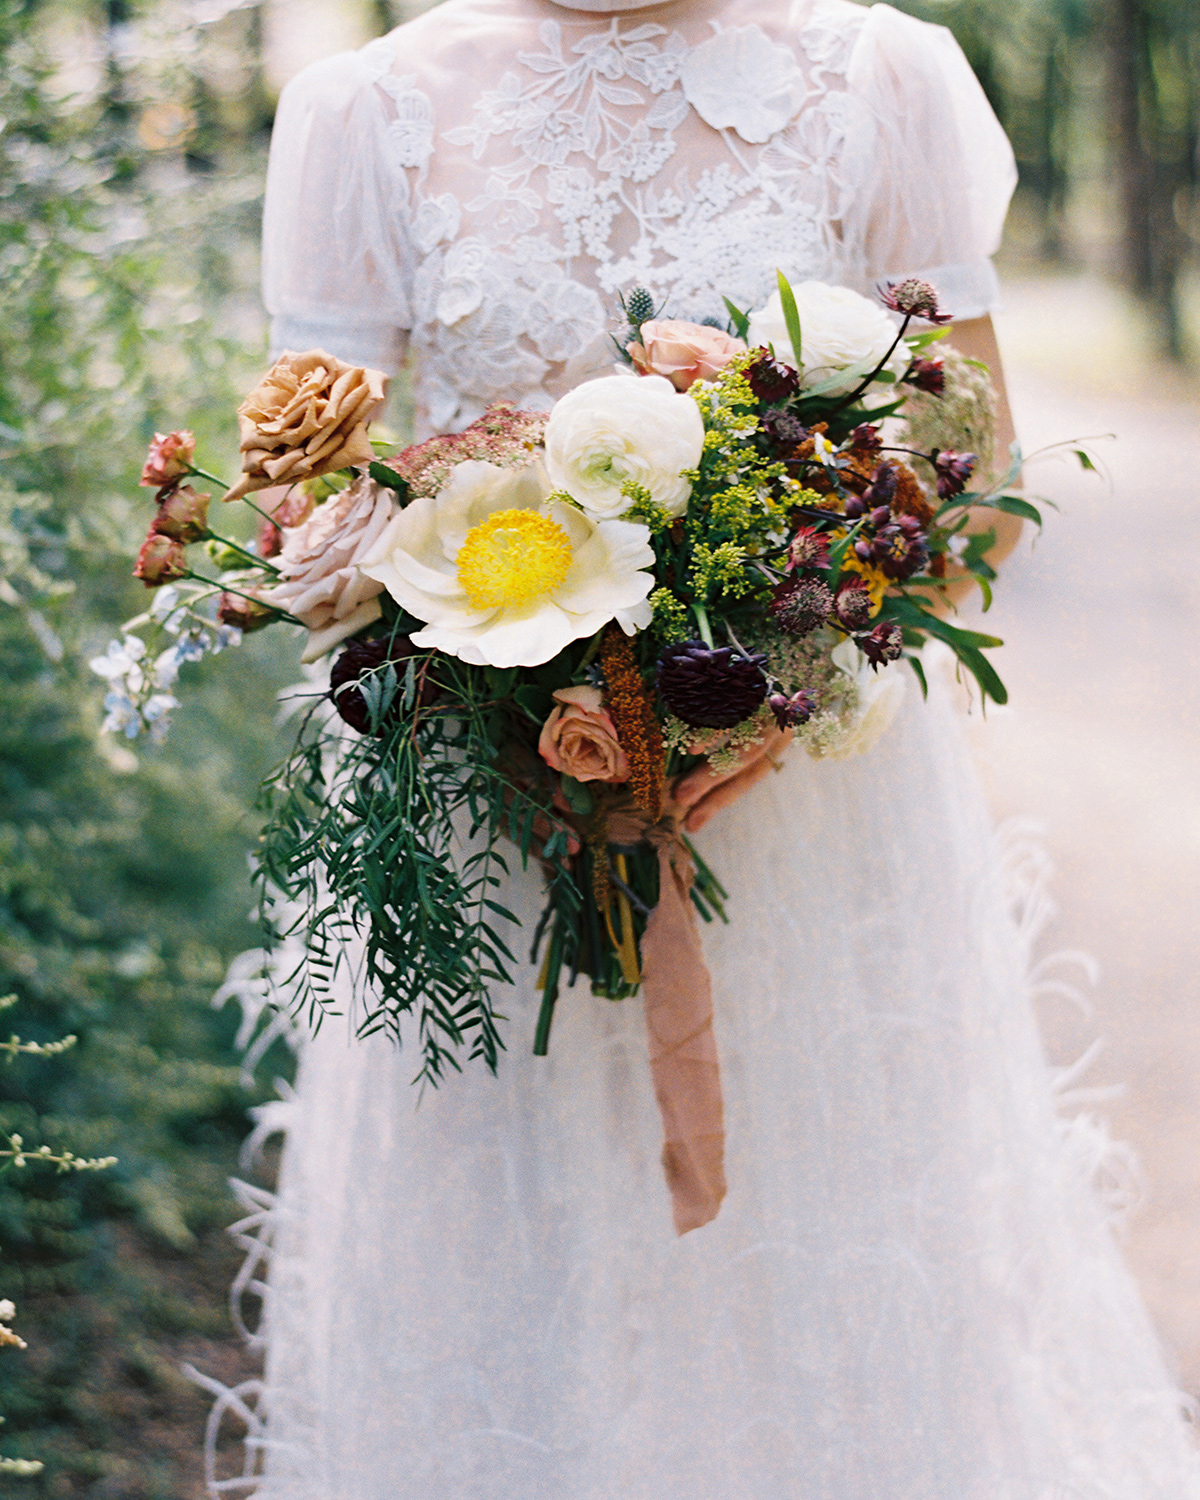 Bride holding bouquet of colorful wildflowers